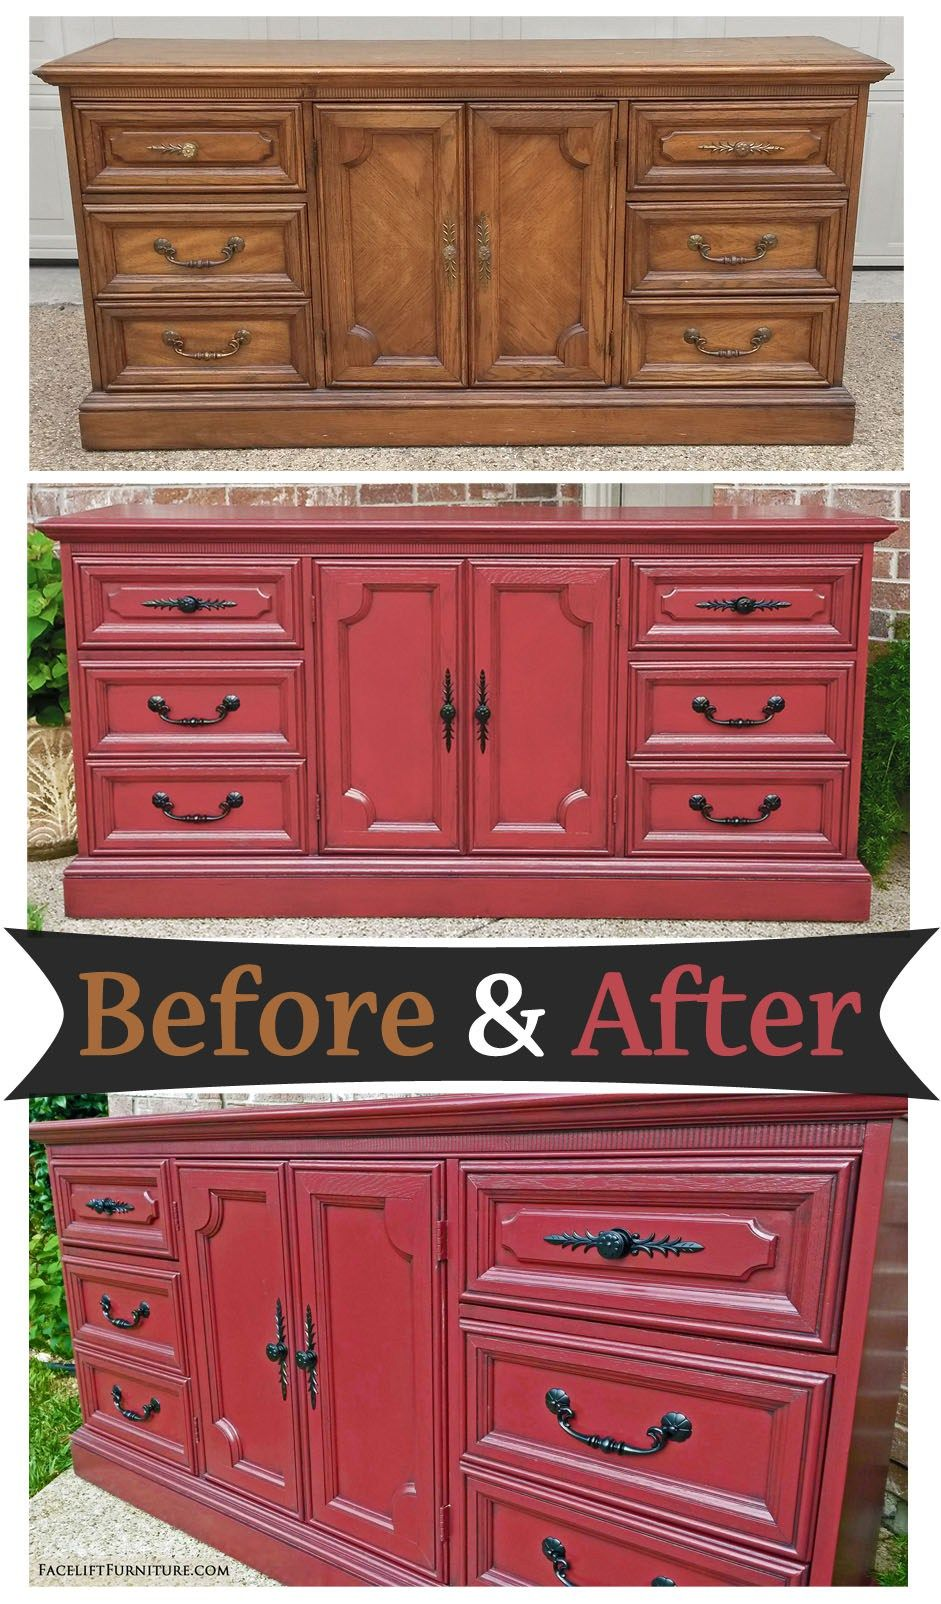 Dresser painted and glazed in Barn Red and Black - Before ...